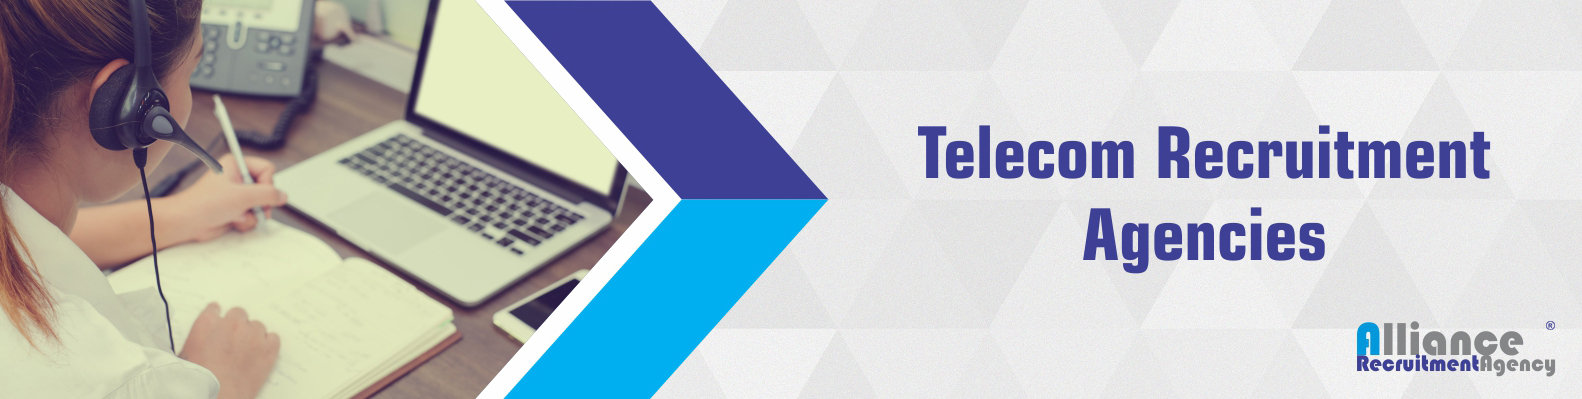 Telecom Recruitment - Telecom Recruitment Agencies